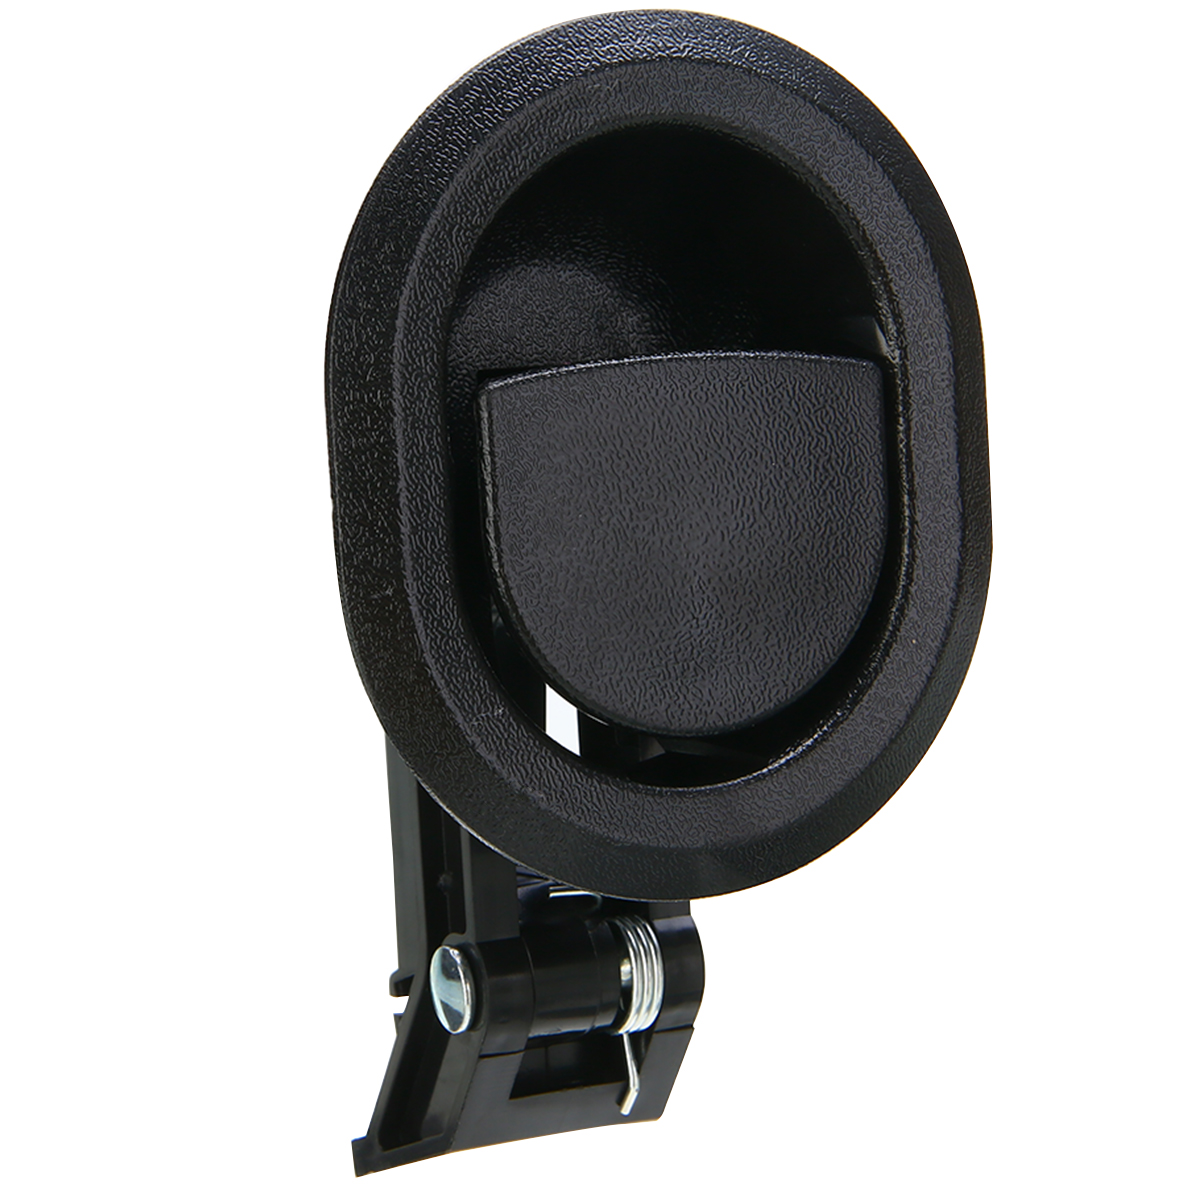 Marvelous Us 2 91 35 Off Black Release Lever Handle Hard Plastic Handle For Recliner Chair Sofa Couch Replacement Parts In Cabinet Pulls From Home Improvement Alphanode Cool Chair Designs And Ideas Alphanodeonline